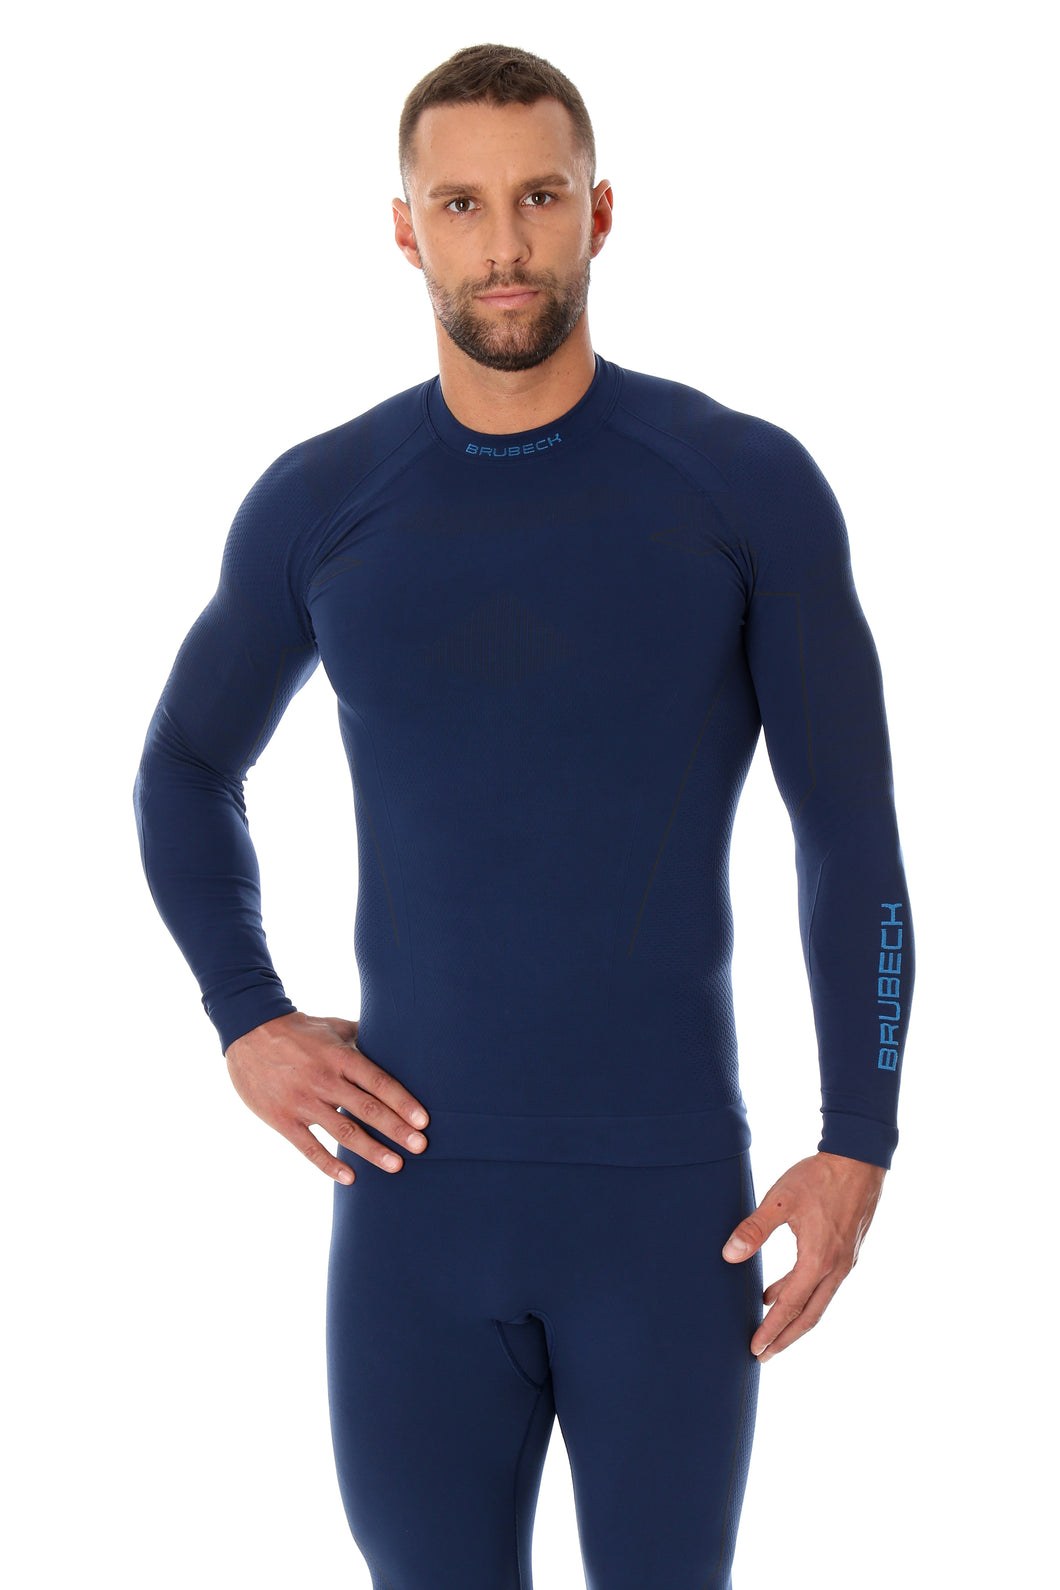 Men's Top THERMO Long Sleeve Navy Blue Front